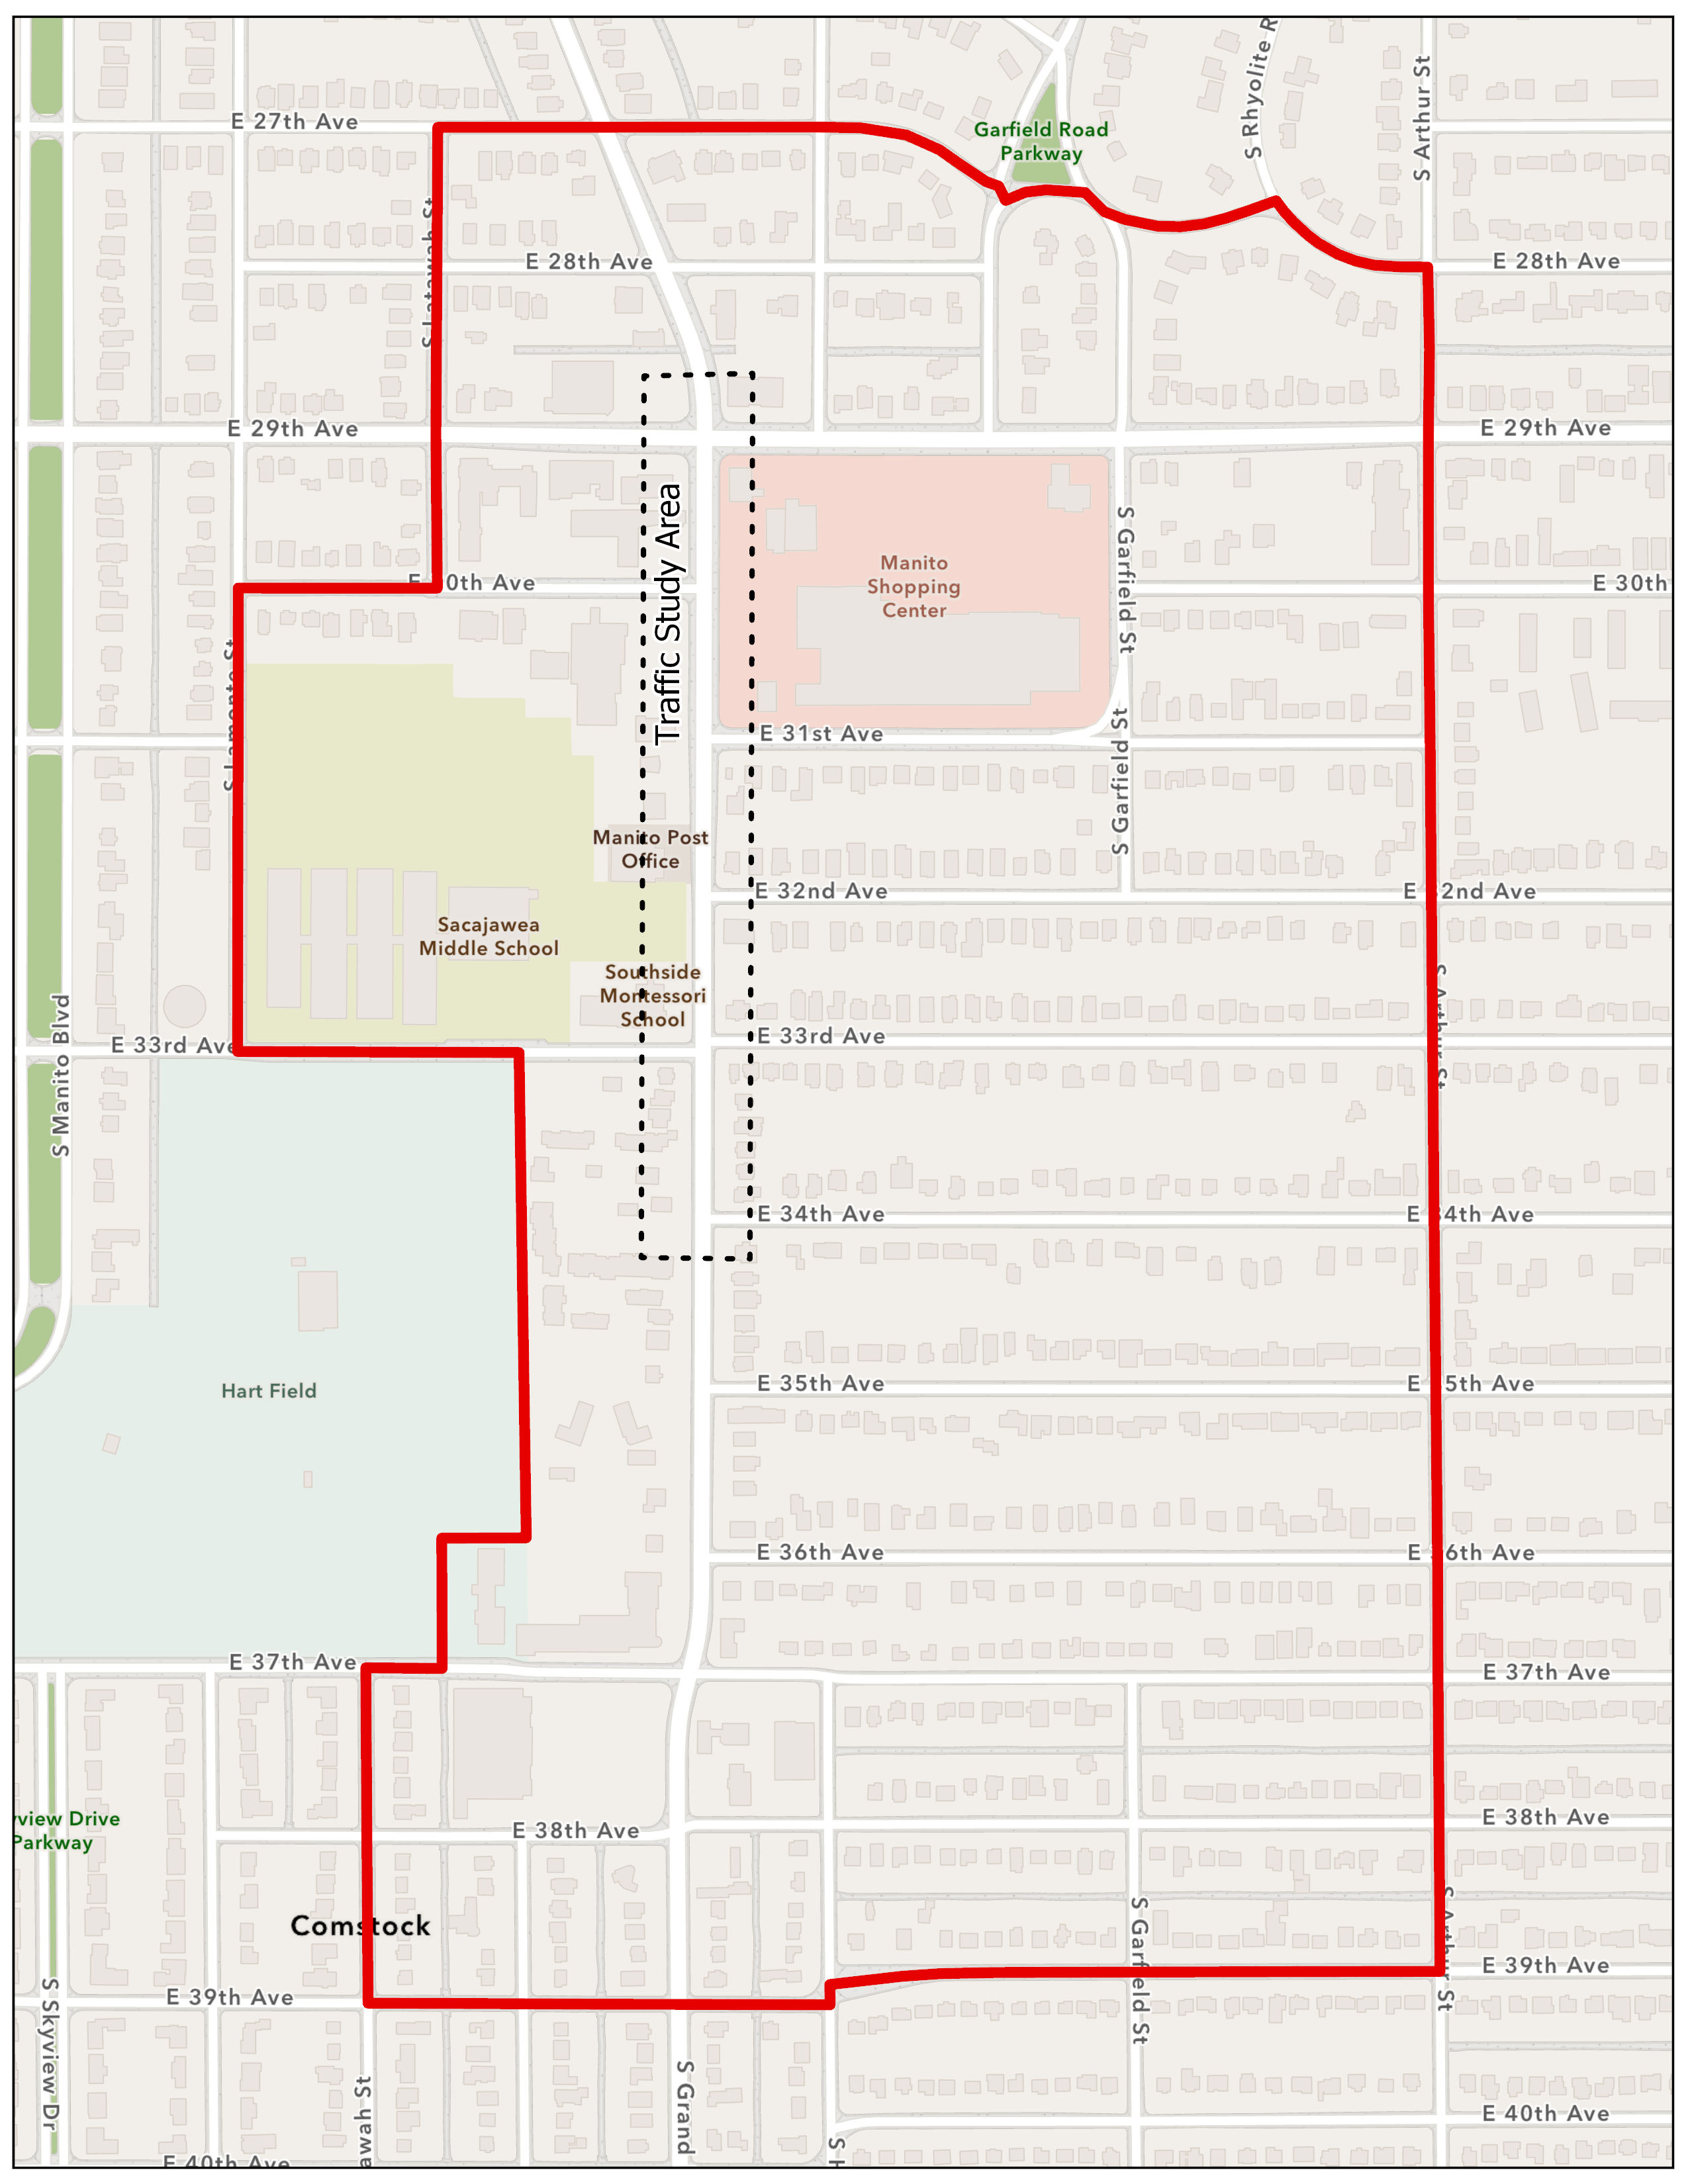 <em>Now, please refer to the traffic study focus area on Grand, from 29th to 34th Avenue, marked by the dashed line on the map for questions 6 - 8.</em>